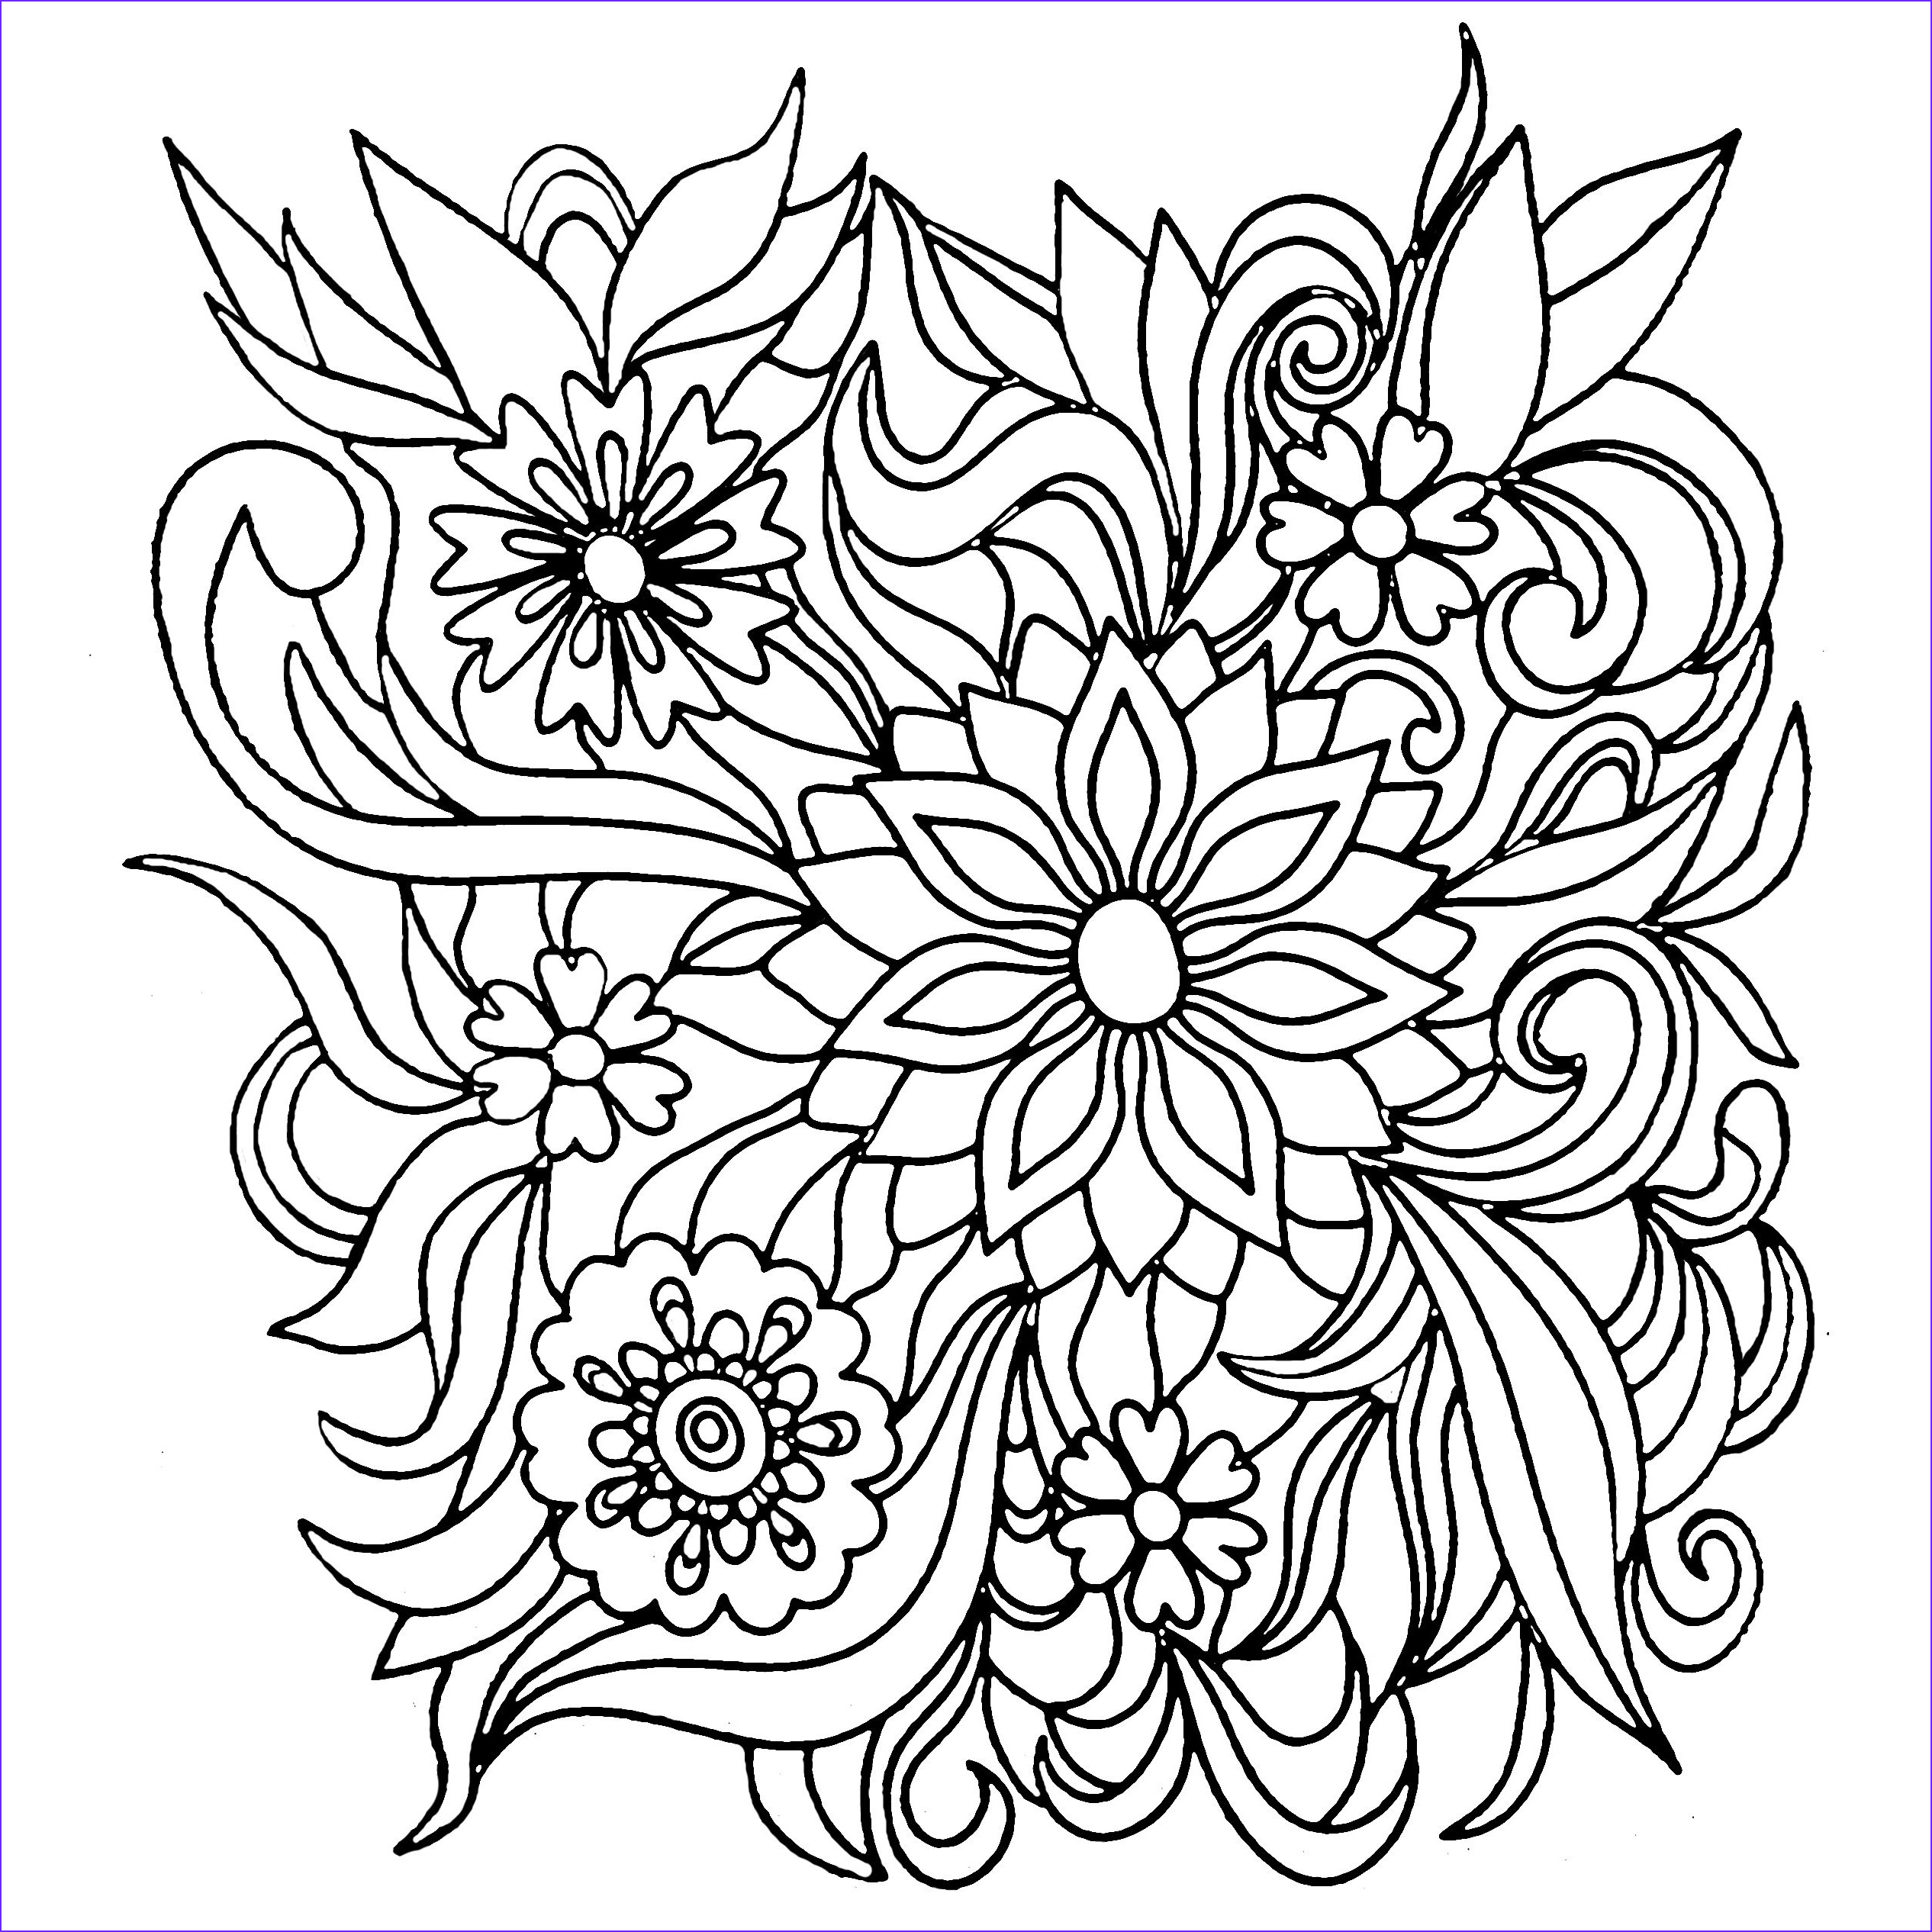 Adult Coloring Pages Flower Luxury Image Colors Of Nature Adult Colouring Book Flowers